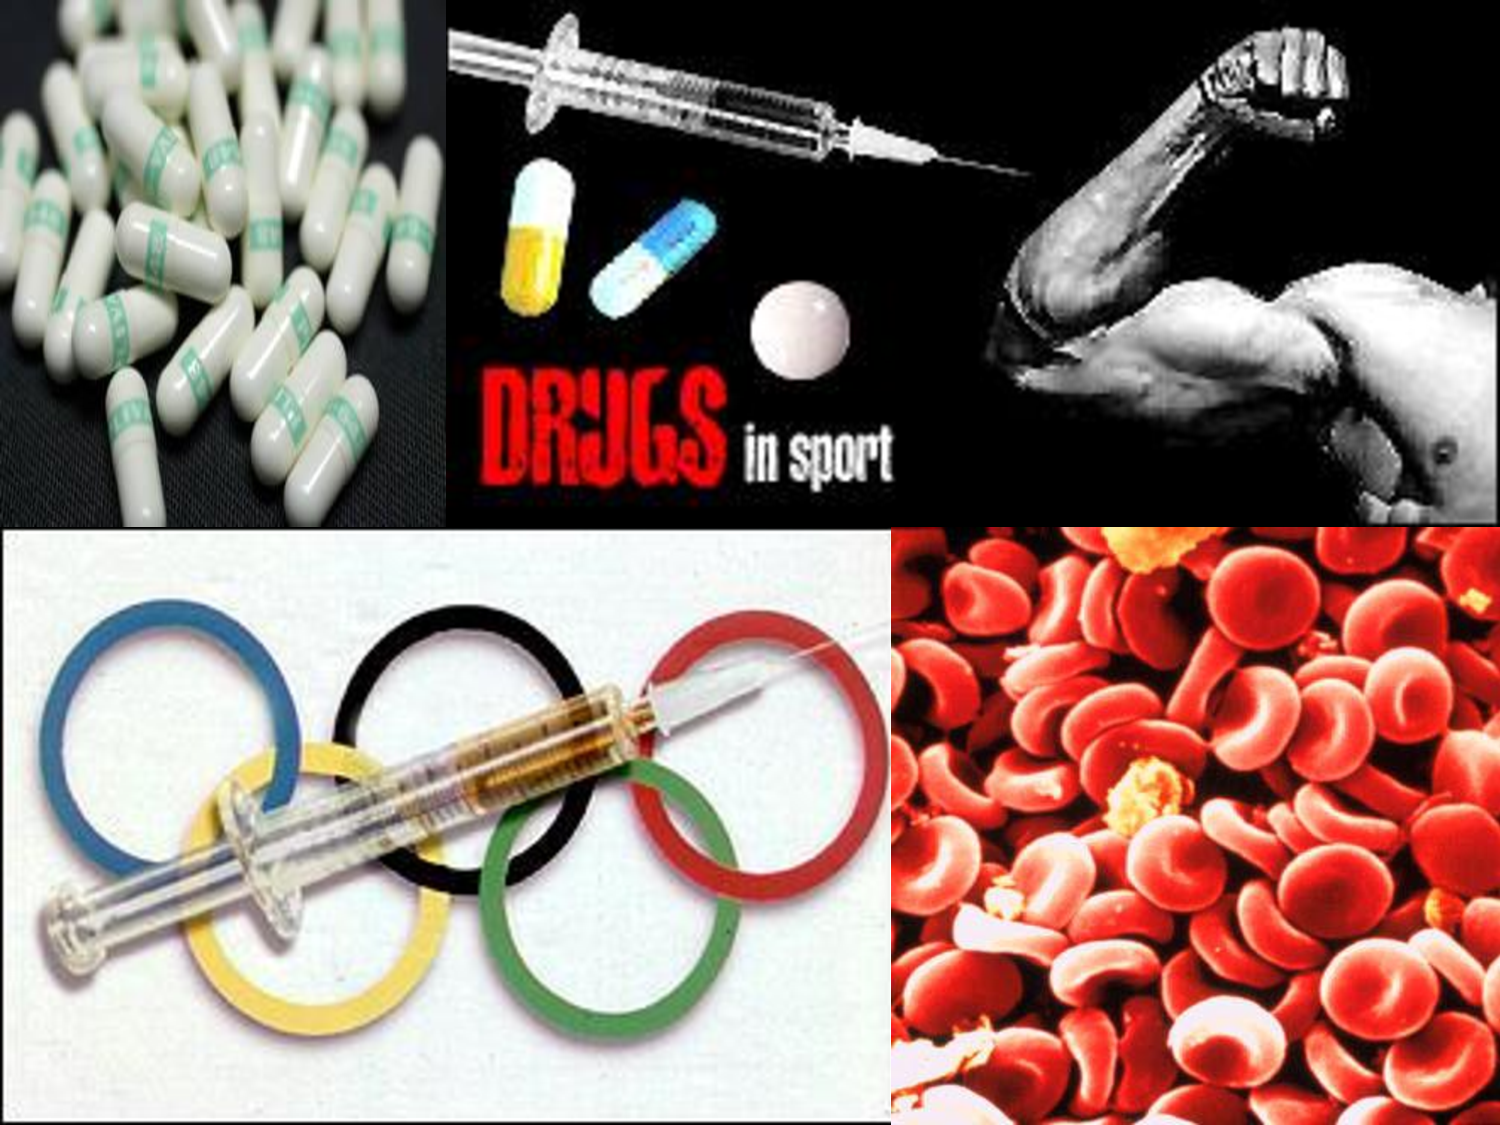 enhancing drugs Free performance enhancing drugs papers, essays, and research papers.